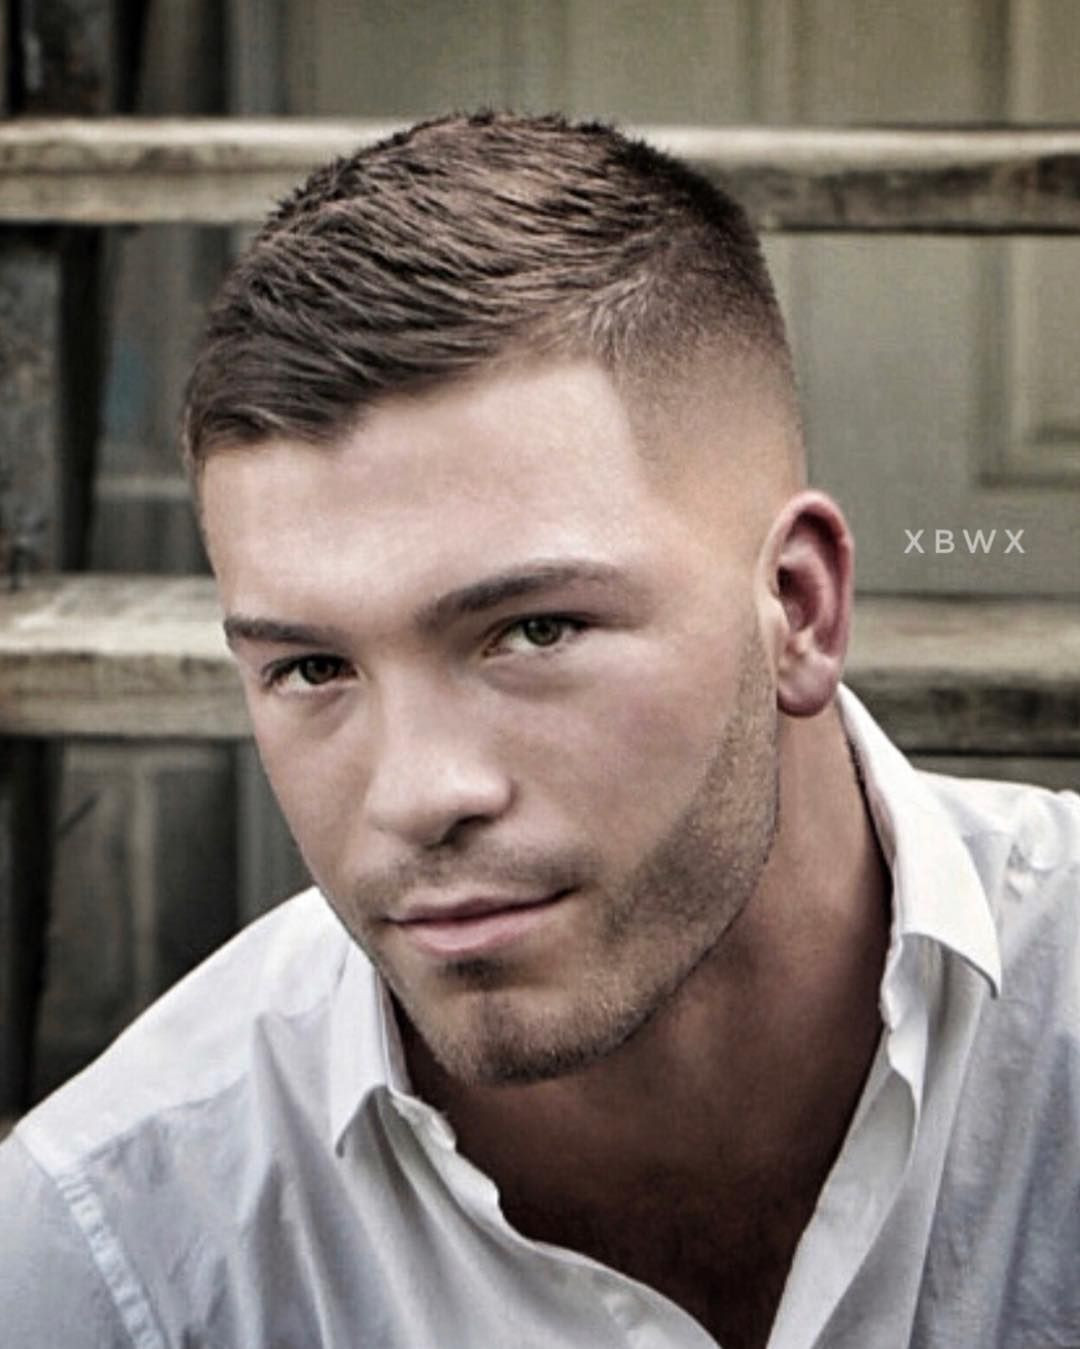 Best ideas about Mens 2019 Haircuts . Save or Pin mens short hairstyles 2019 Haircuts in 2019 Now.